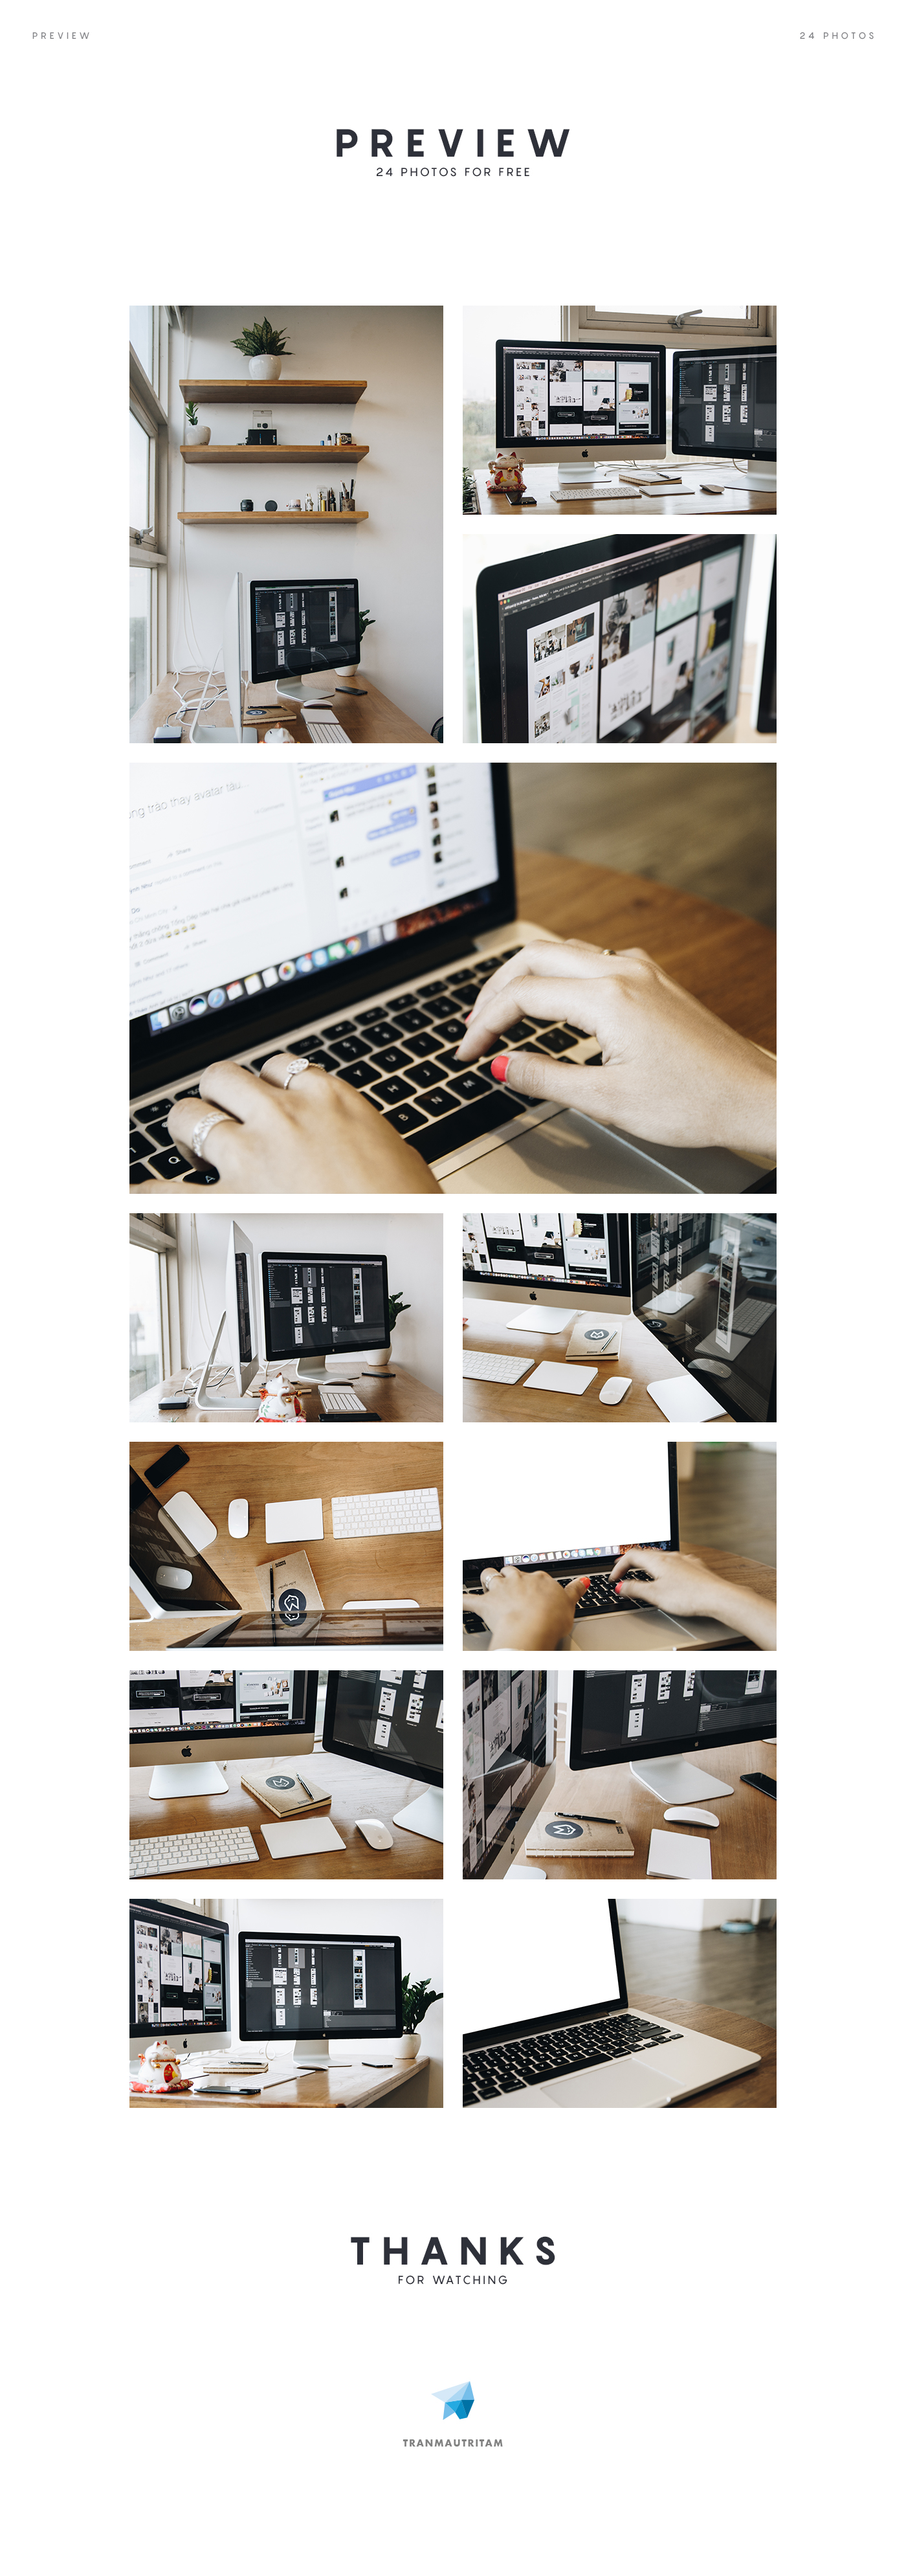 24 Workspace Free Photos for Web Designers and Developers